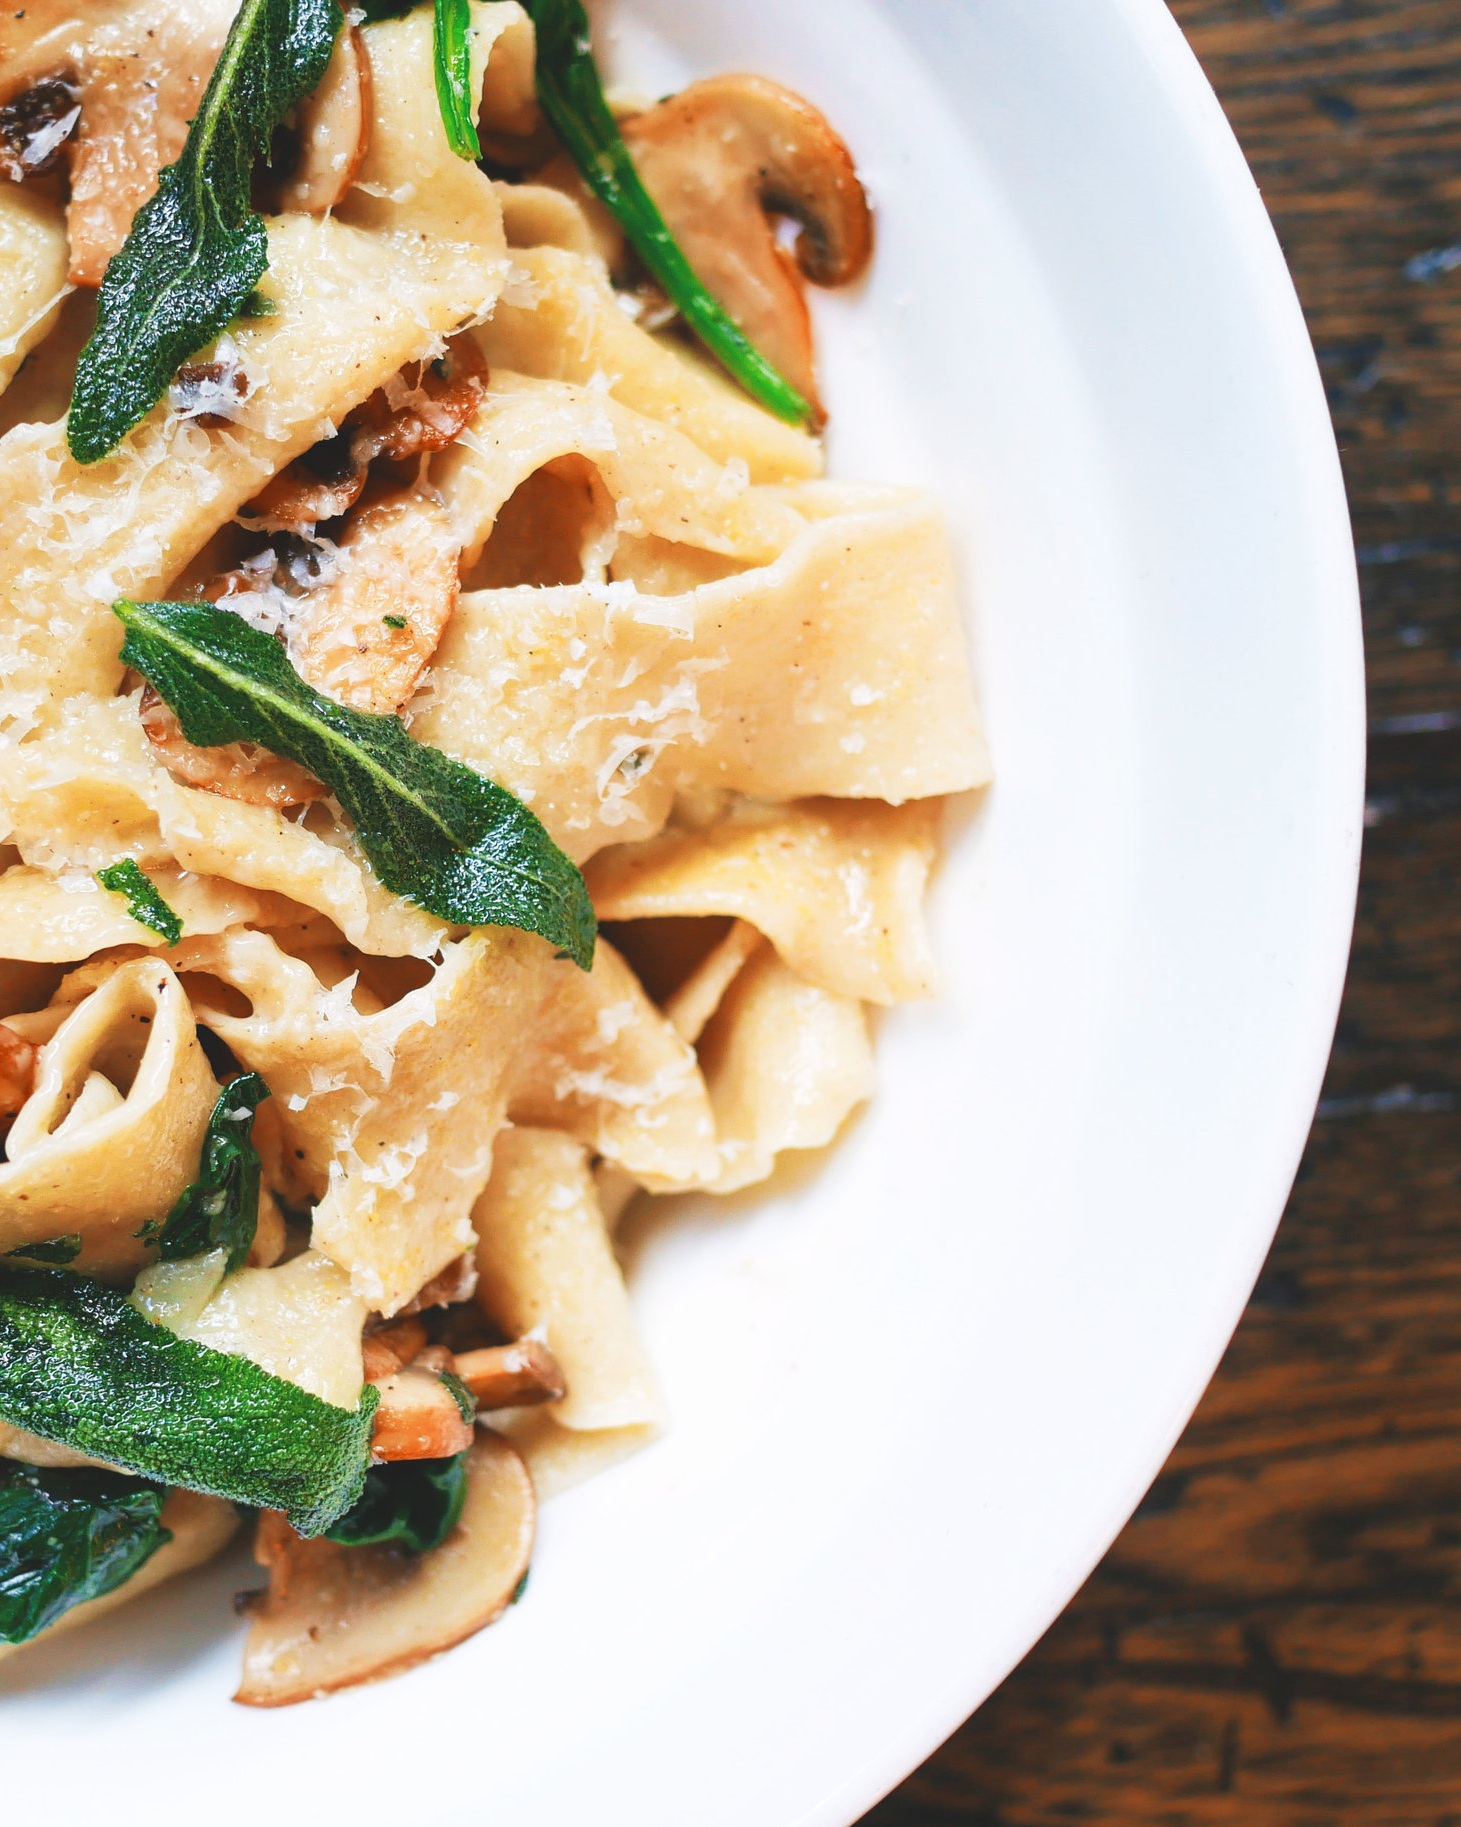 Try paring me with mushroom pasta -